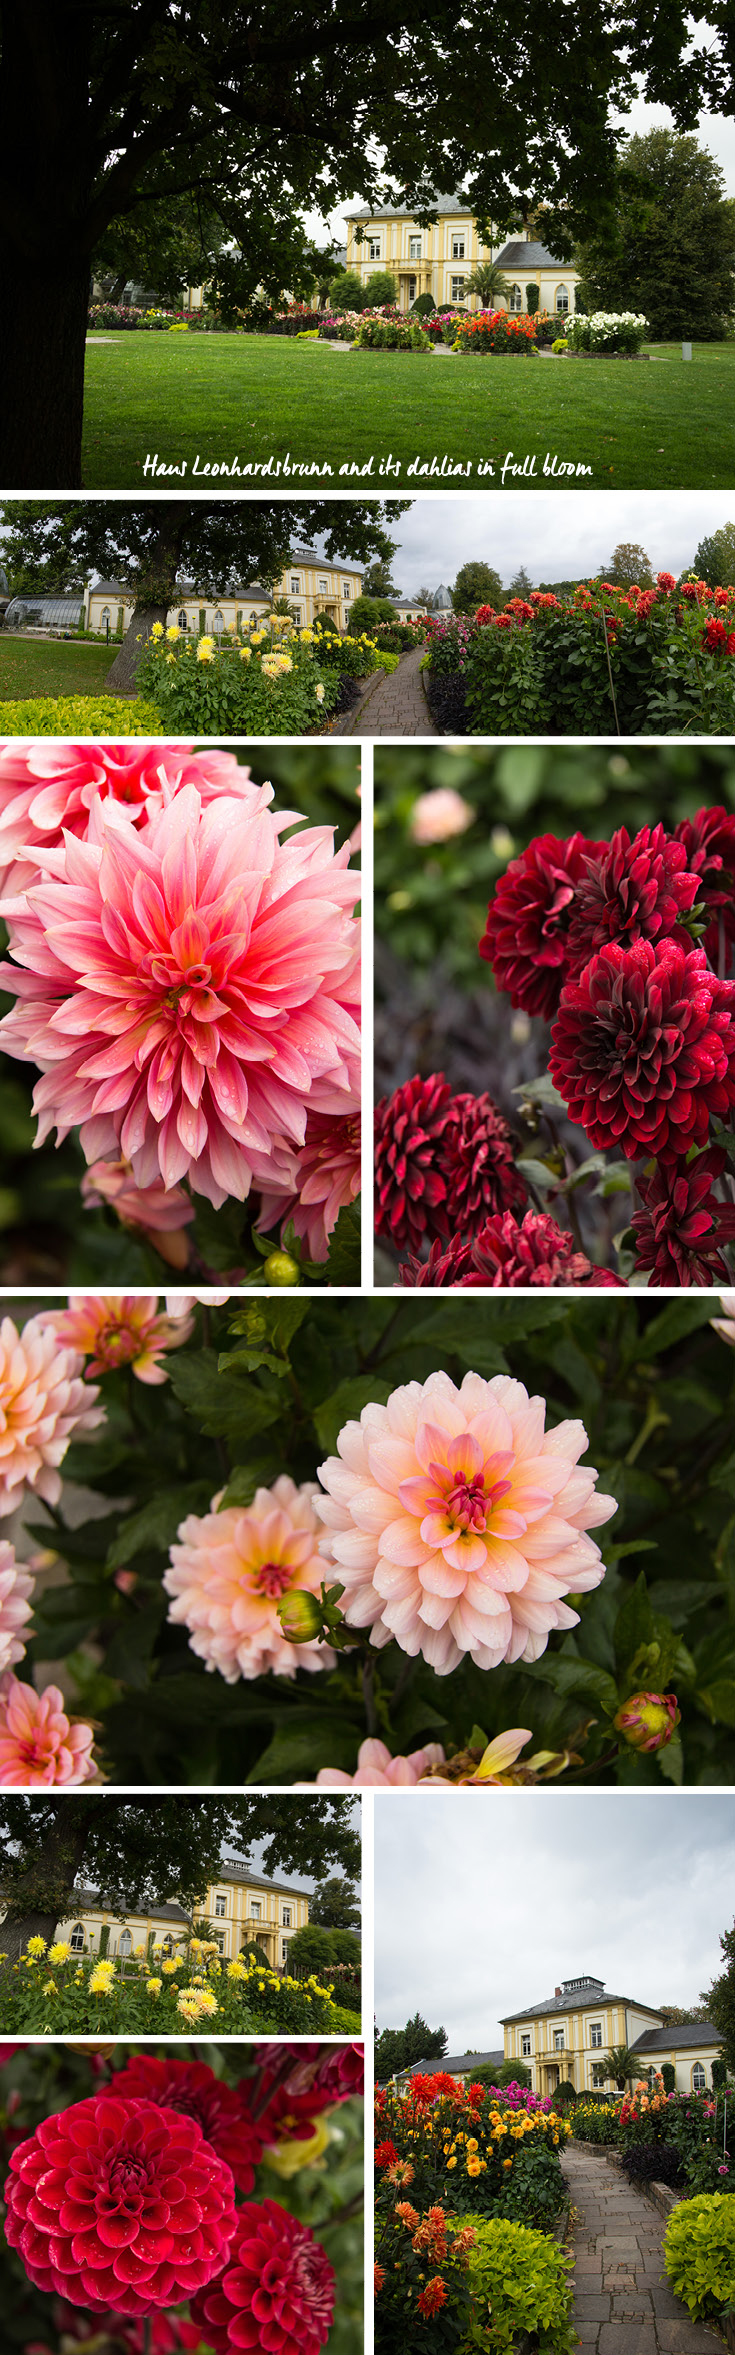 In September, the dahlias are in full bloom in front the Haus Leonhardsbrunn in Palmengarten in Frankfurt am Main, Germany